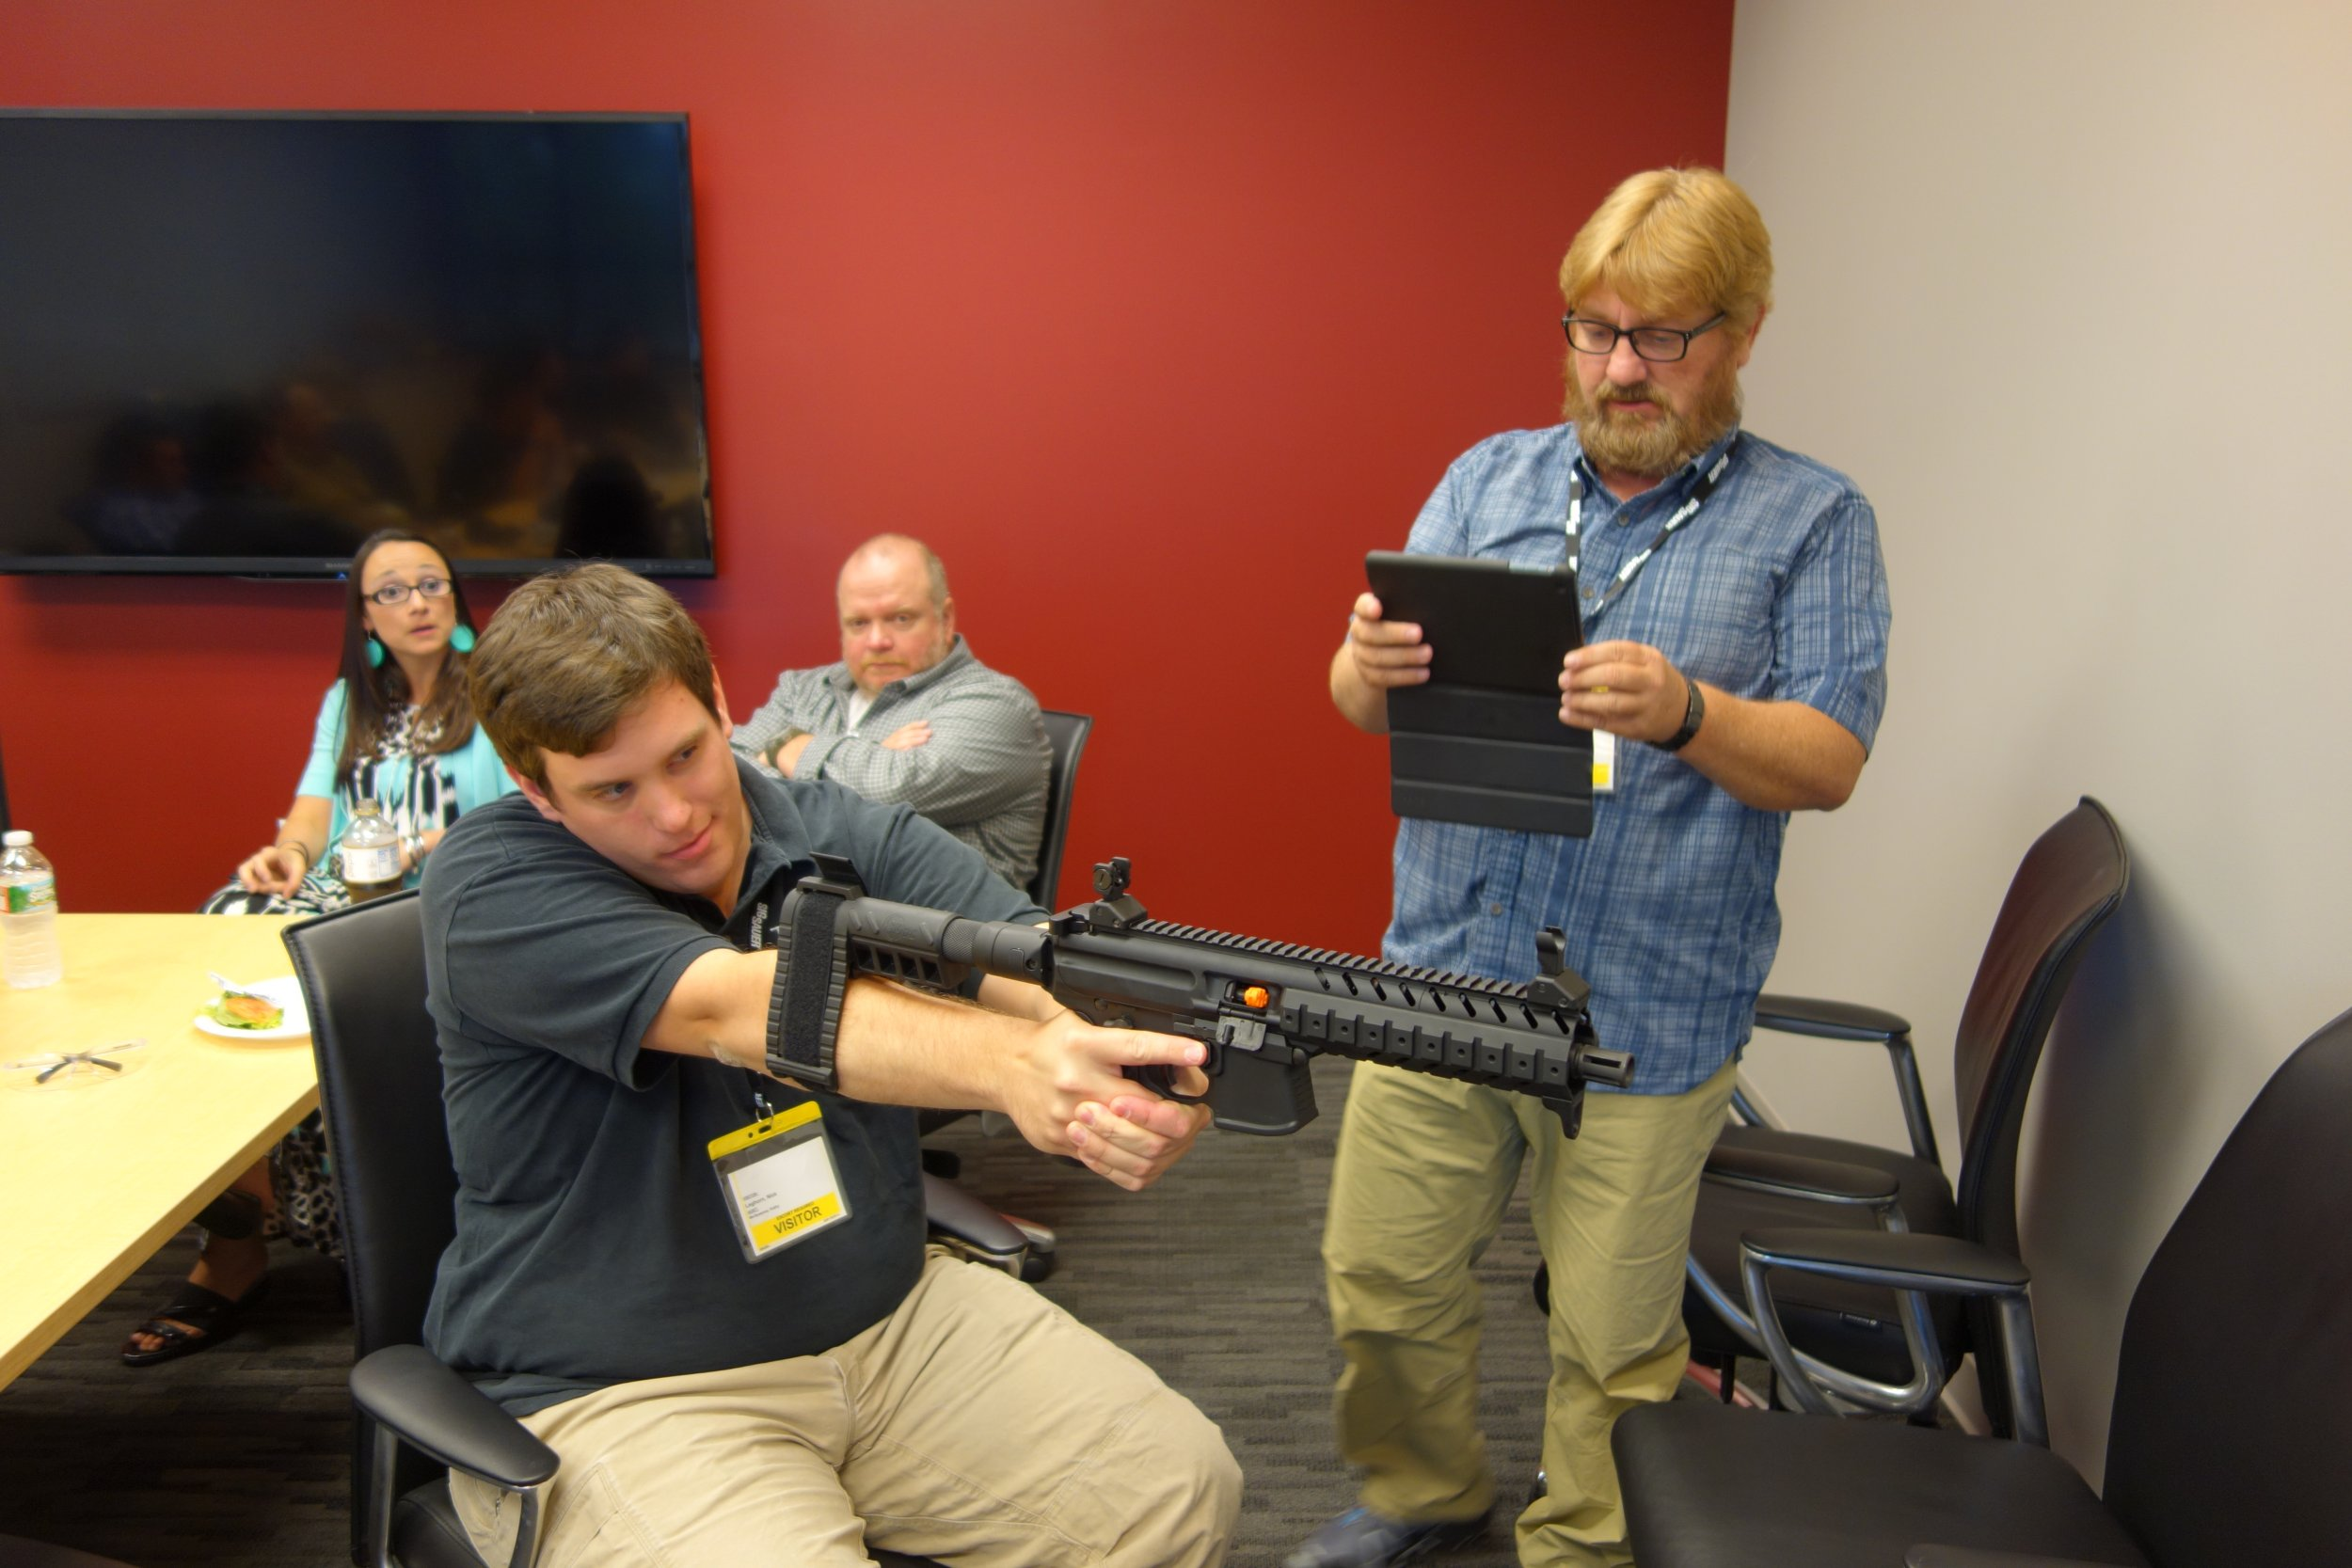 SIG SAUER SIGTac SB15 Pistol Stabilizing Brace on SIG MCX Tactical Piston AR Carbine SBR Nick Leghorn The Truth About Guns TTAG at SIG SAUER Headquarters New Media Writers Event 2014 David Crane DefenseReview.com DR 11 SIG SAUER SIGTac SB15 Pistol Stabilizing Brace for One Handed Firing of Tactical AR 15 Pistols